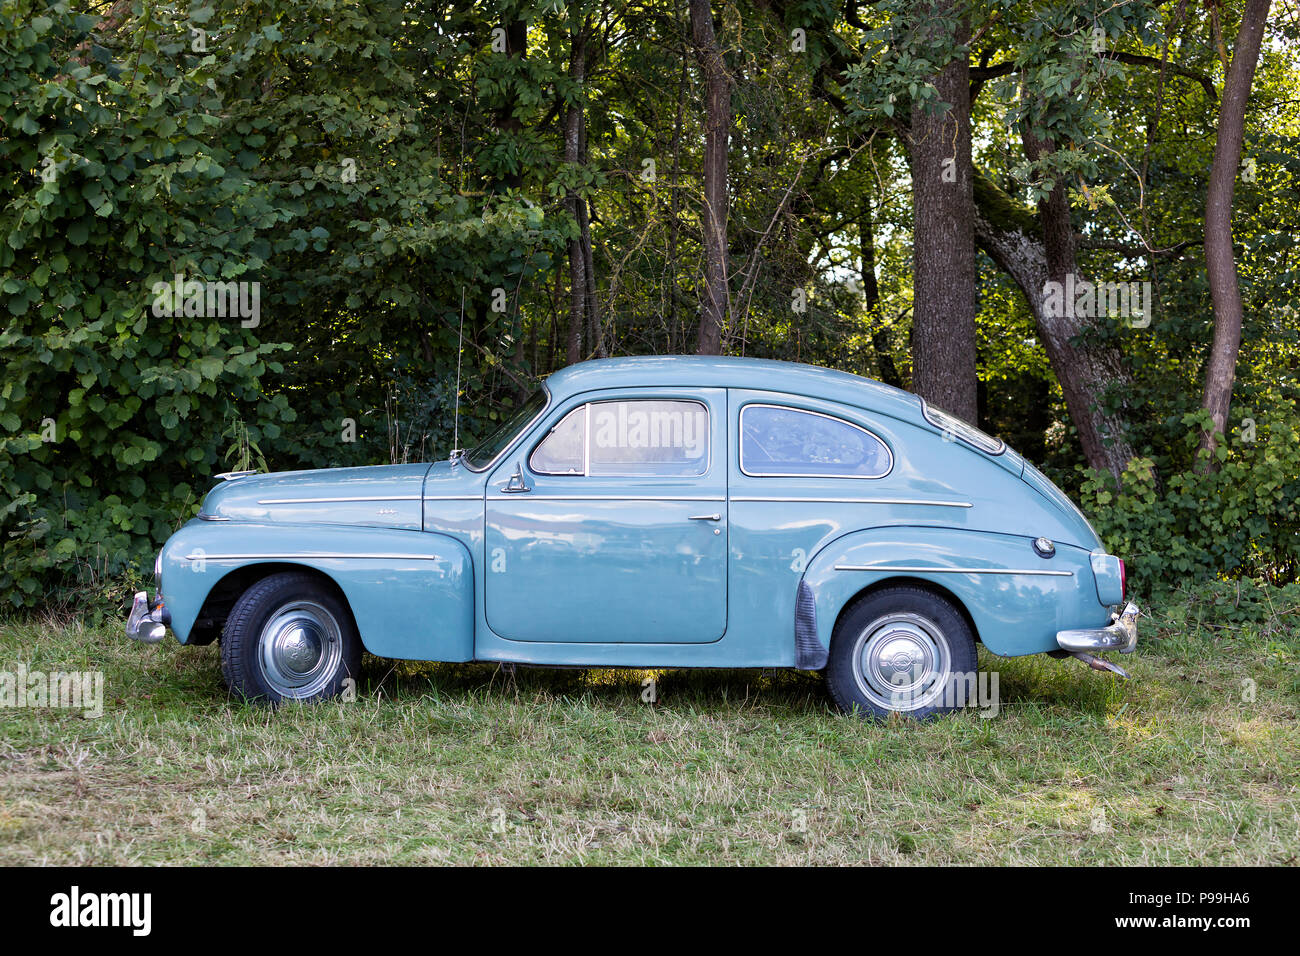 Emmering Stock Photos Images Alamy Volvo Pv444 Wiring Diagram Vintage Car Electrical Germany 19 September 2015 Image